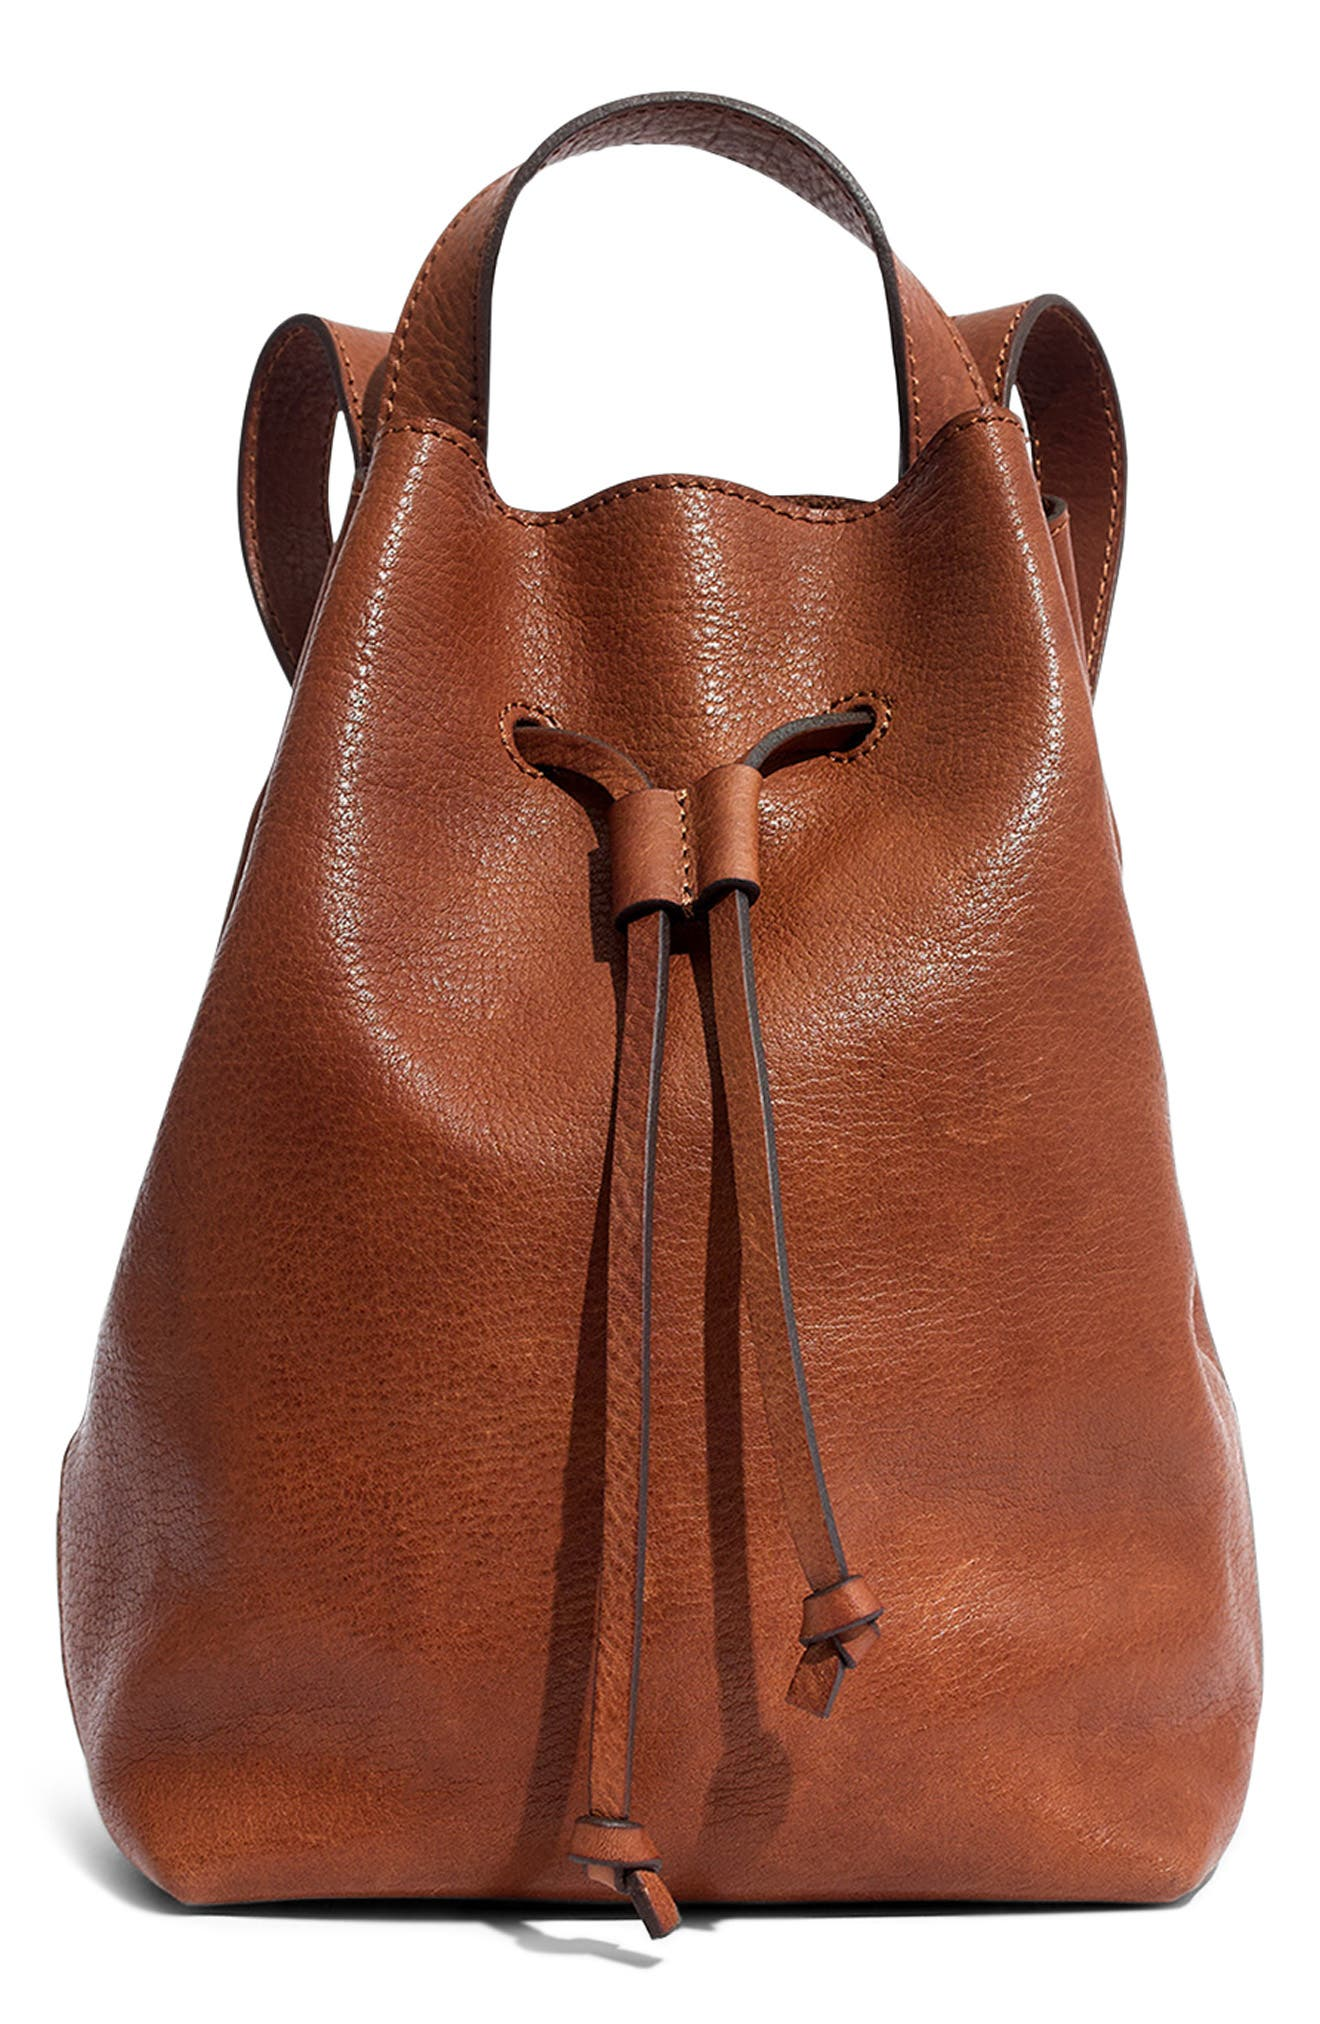 Mini Somerset Leather Backpack,                             Main thumbnail 1, color,                             200